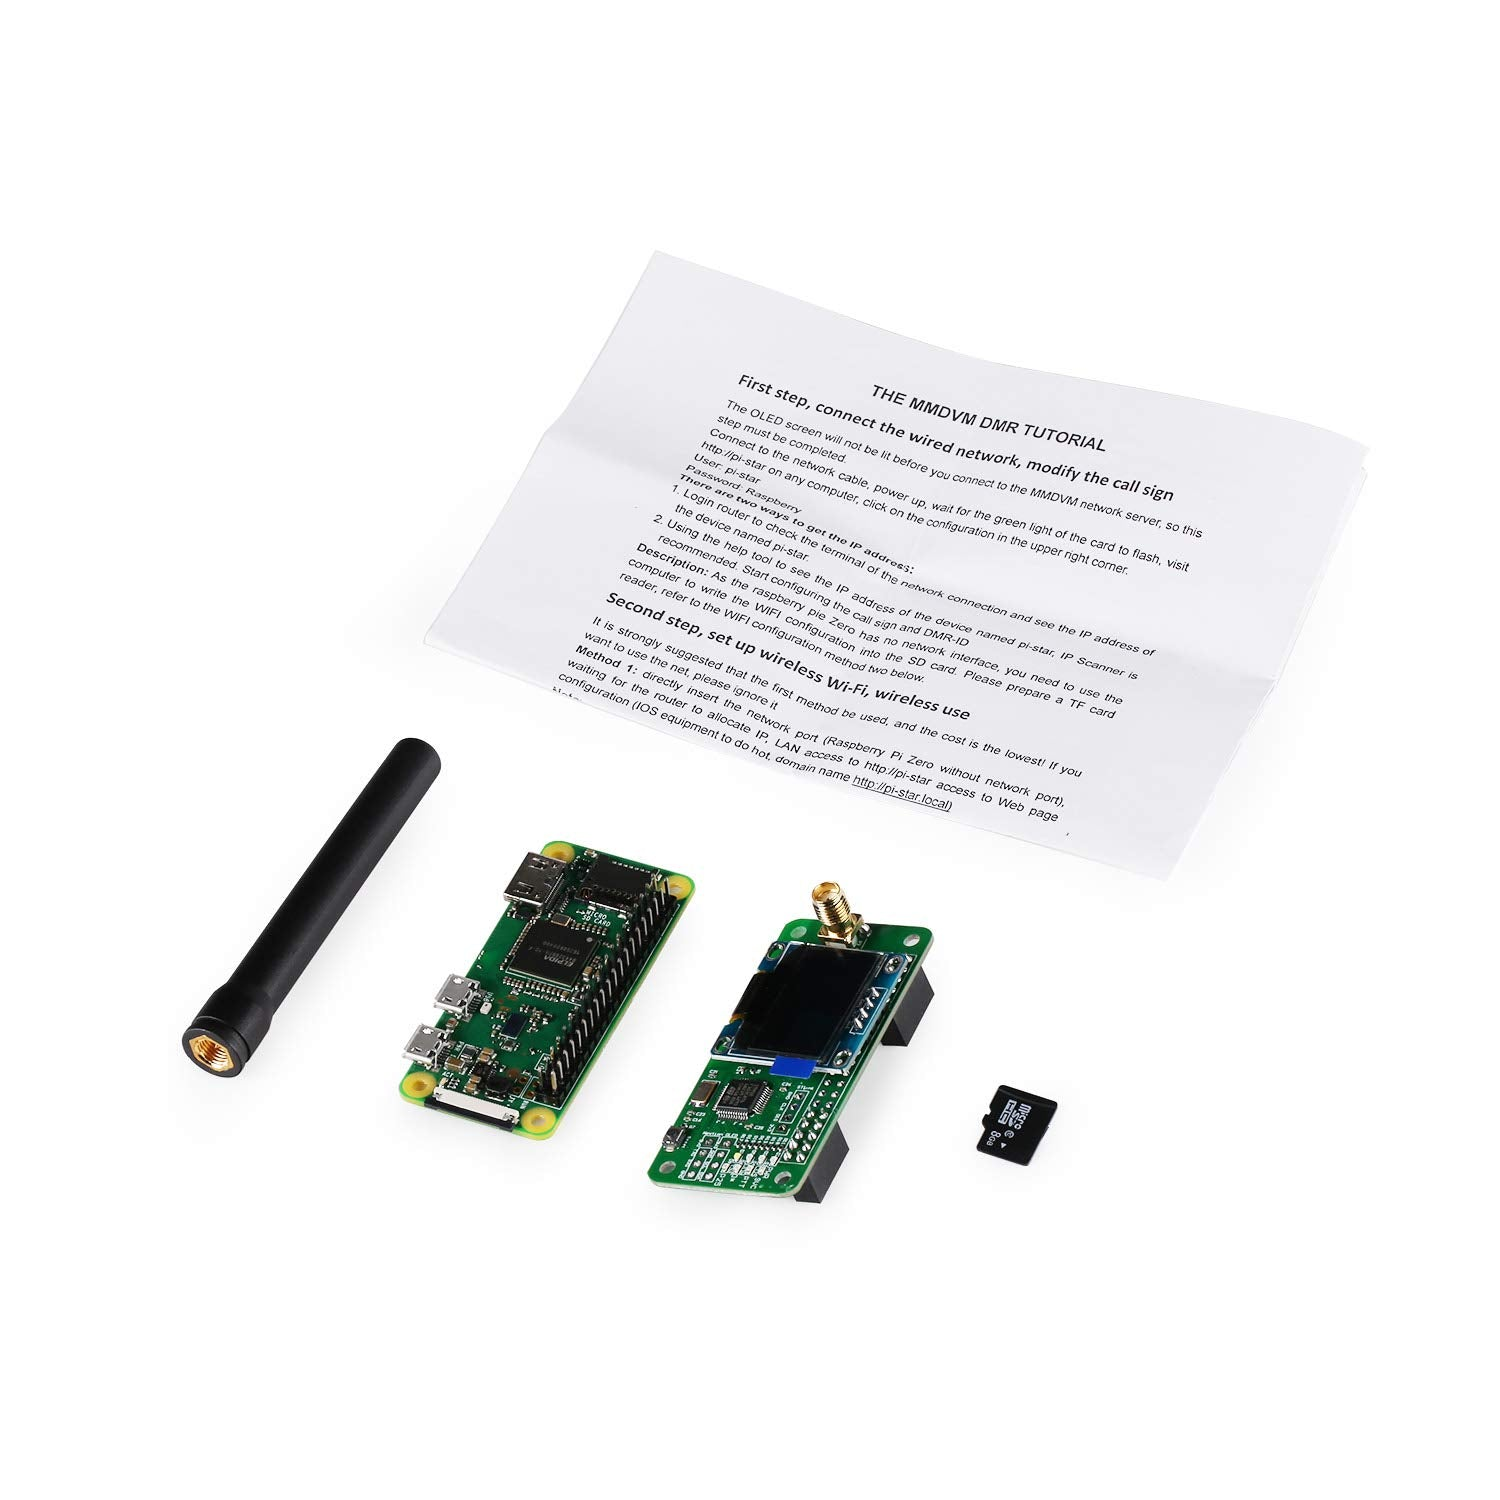 MMDVM Hotspot WiFi Digital Voice Modem Kit with Raspberry Pi Zero